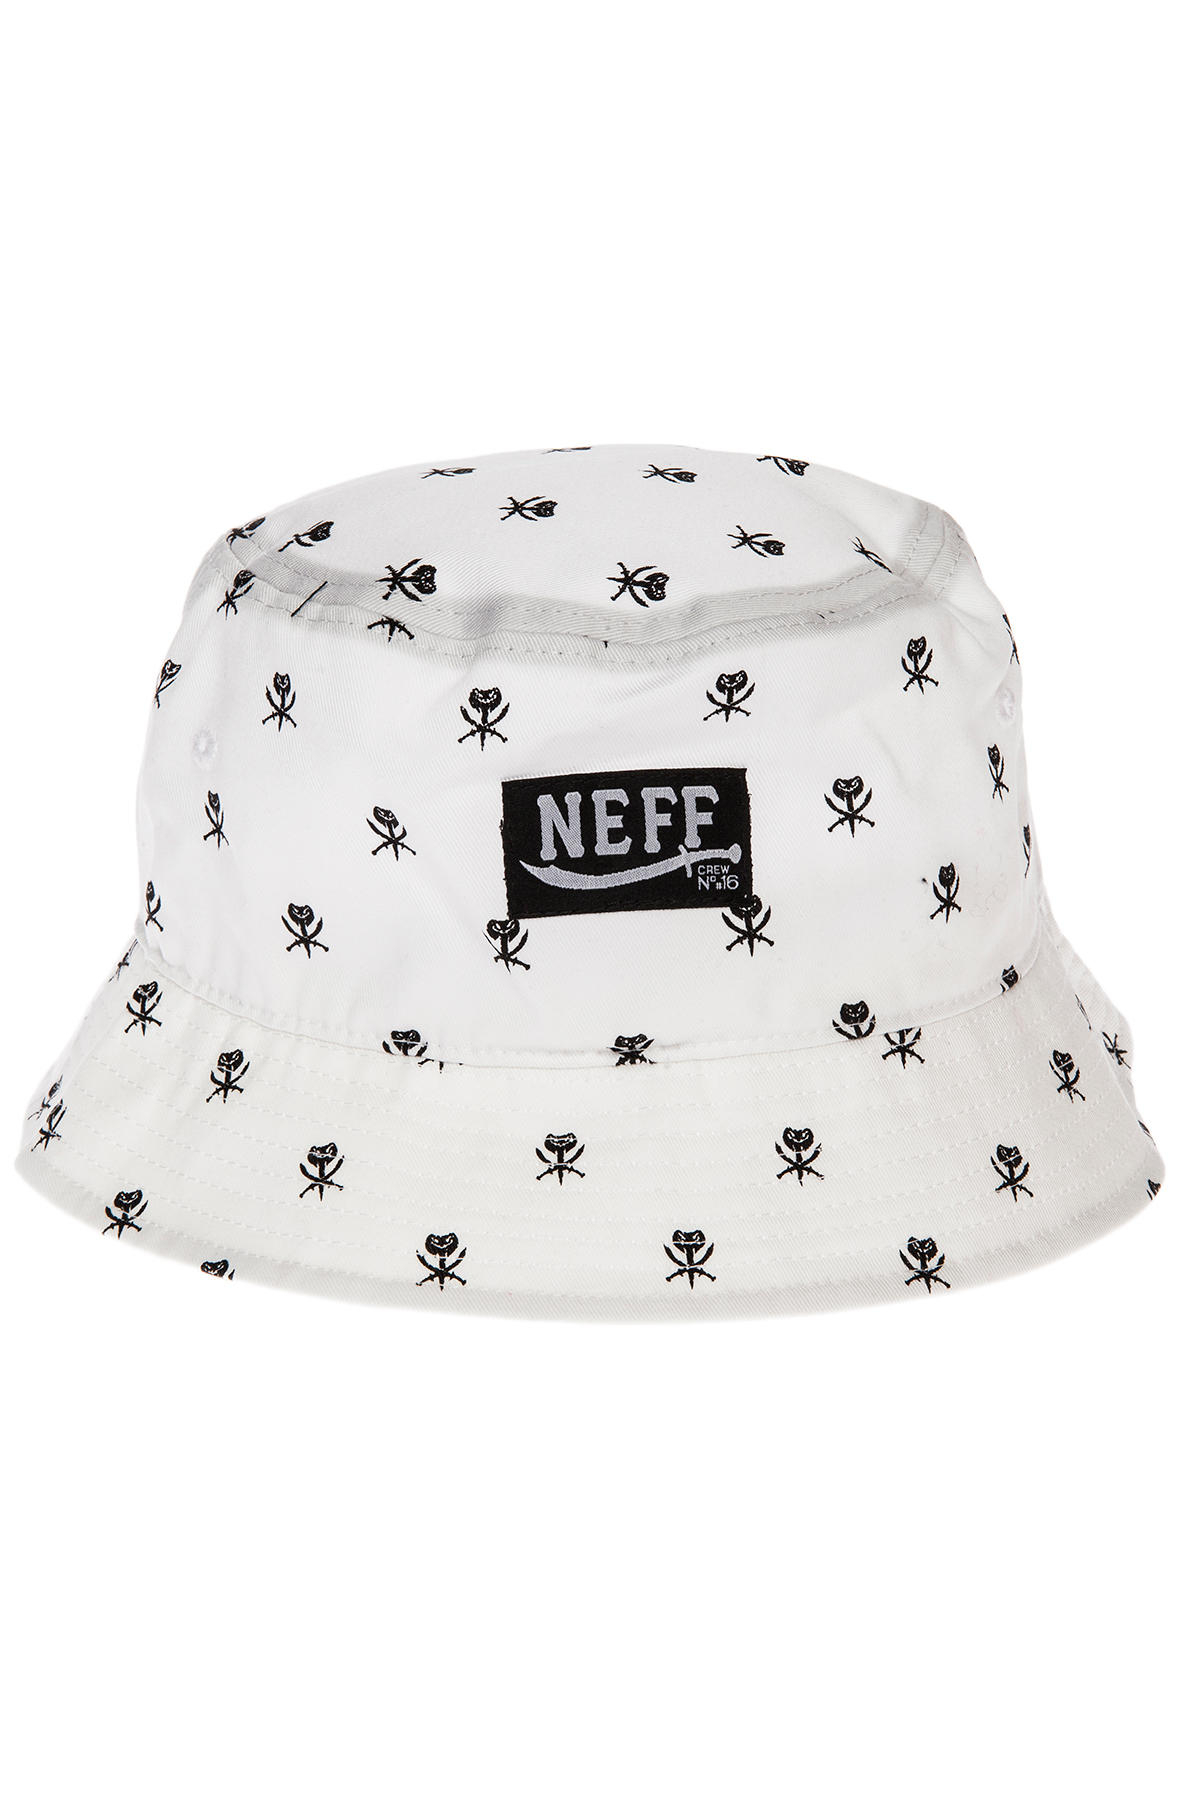 ce0bf0b1bf8 ... authentic lyst neff the sultans bucket hat in white for men c7de4 1f01c